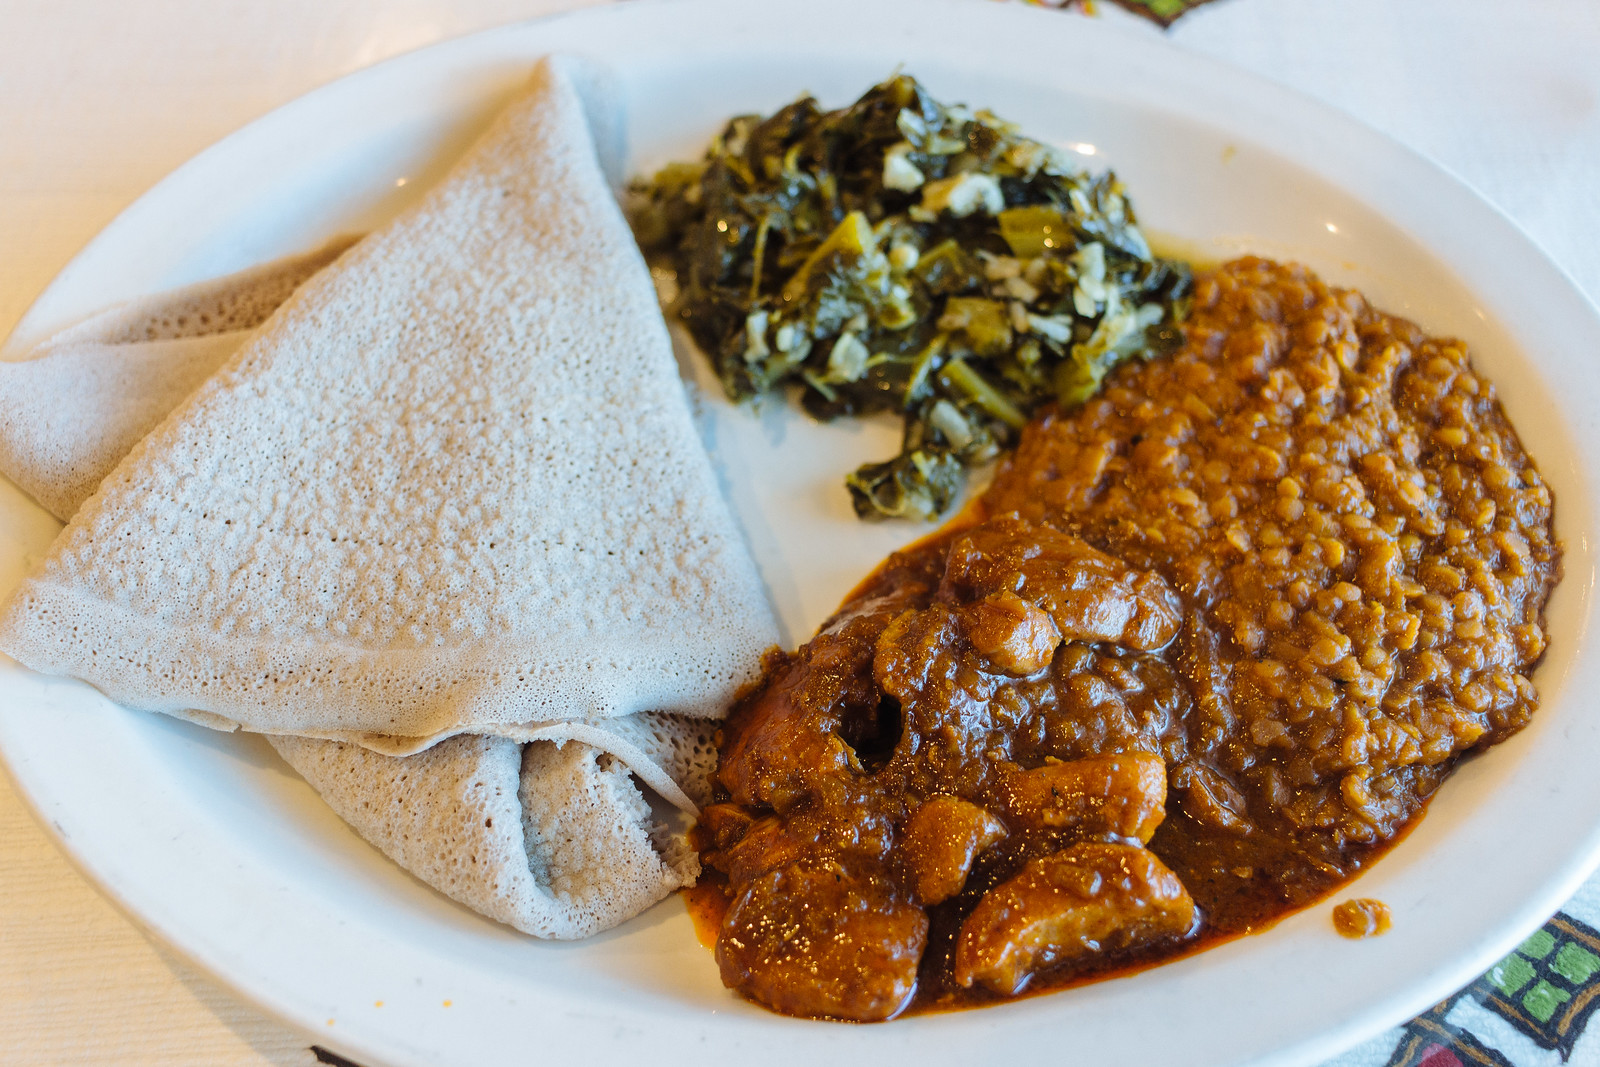 Spiced chicken in a sauce with lentils and greens and folded, spongey bread